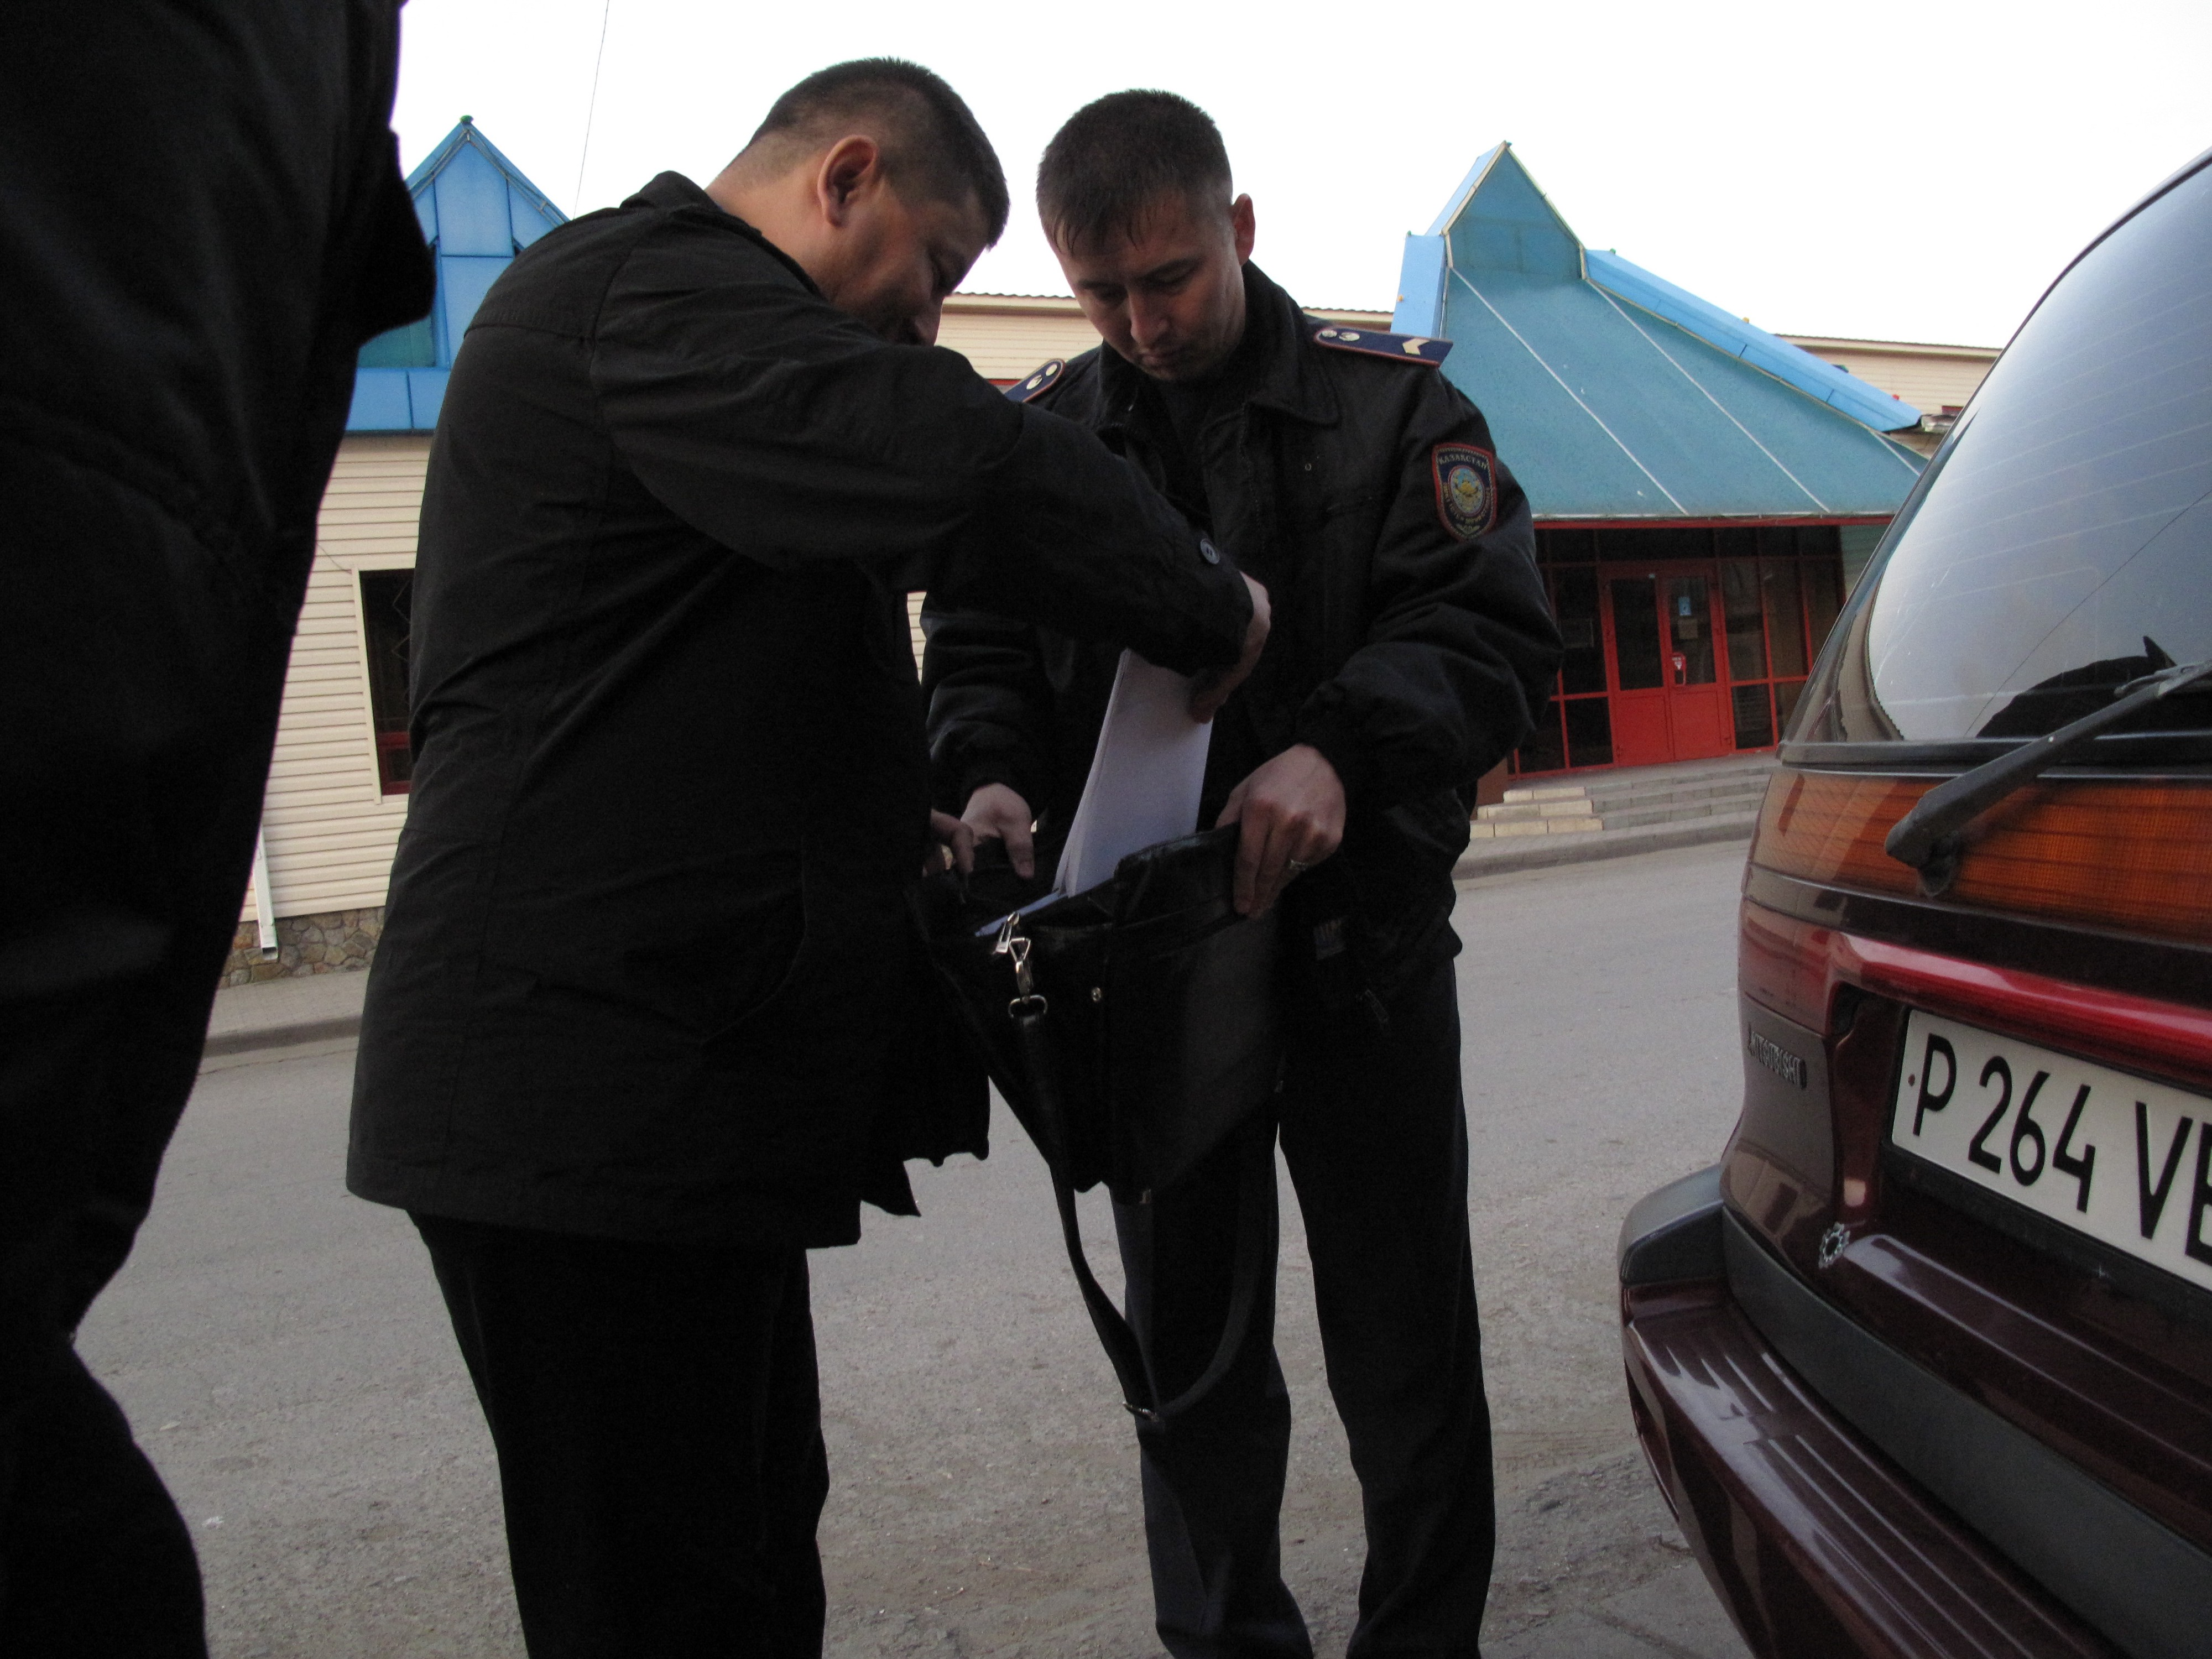 I got arrested in Kazakhstan and represented myself in court